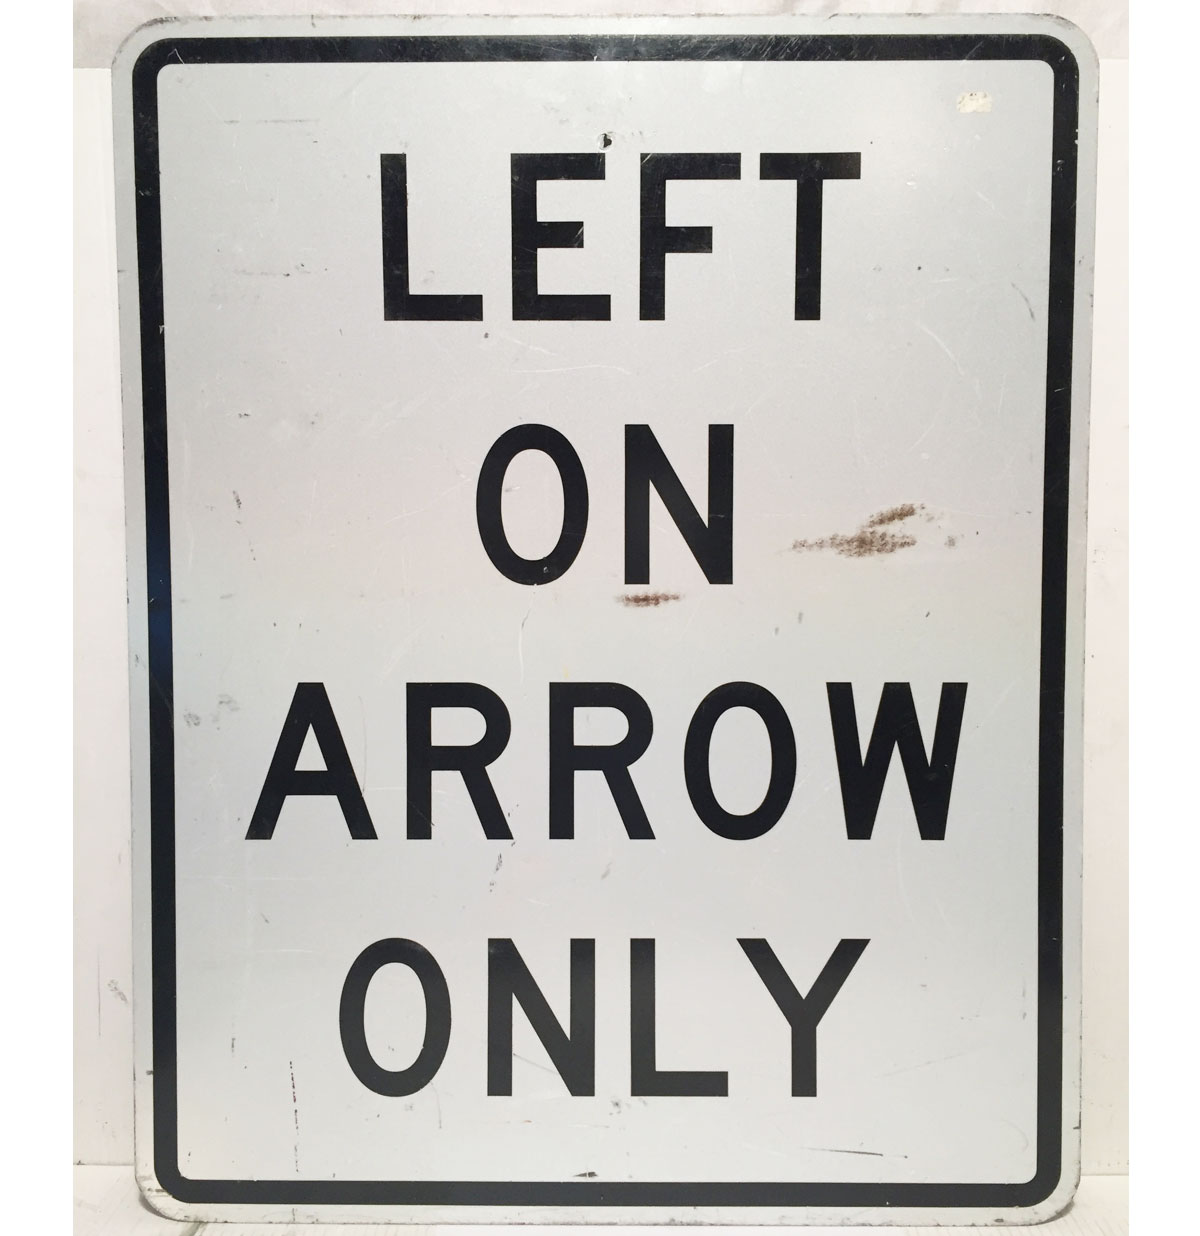 Left On Arrow Only Straatbord - Origineel